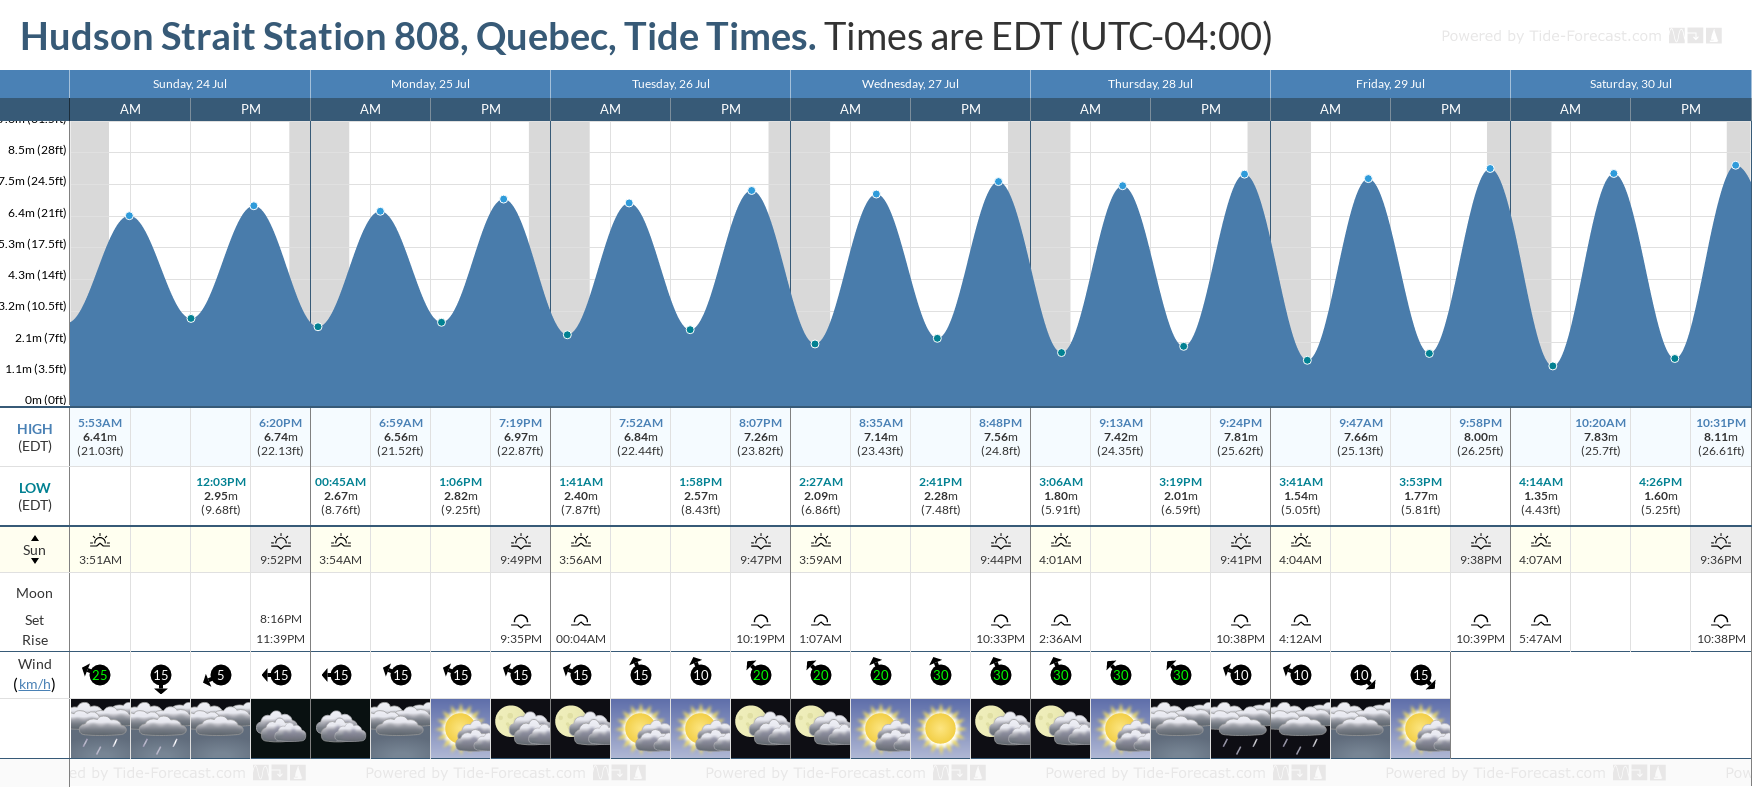 Hudson Strait Station 808, Quebec Tide Chart including high and low tide tide times for the next 7 days